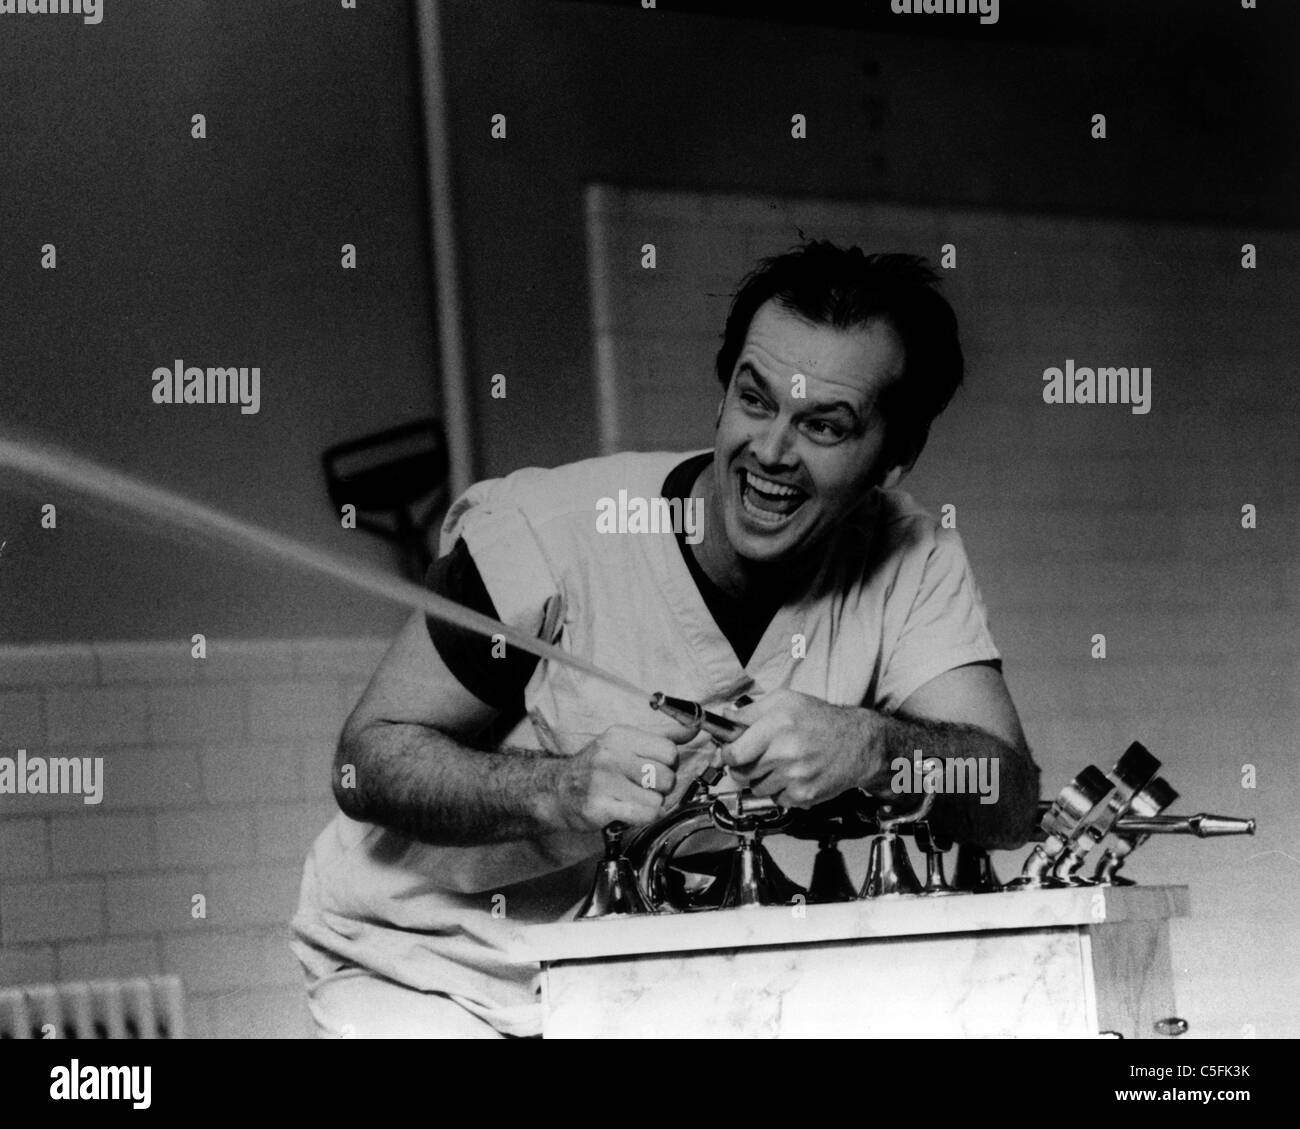 ONE FLEW OVER THE CUCKOO'S NEST(1975) JACK NICHOLSON OFC 001P MOVIESTORE COLLECTION LTD - Stock Image